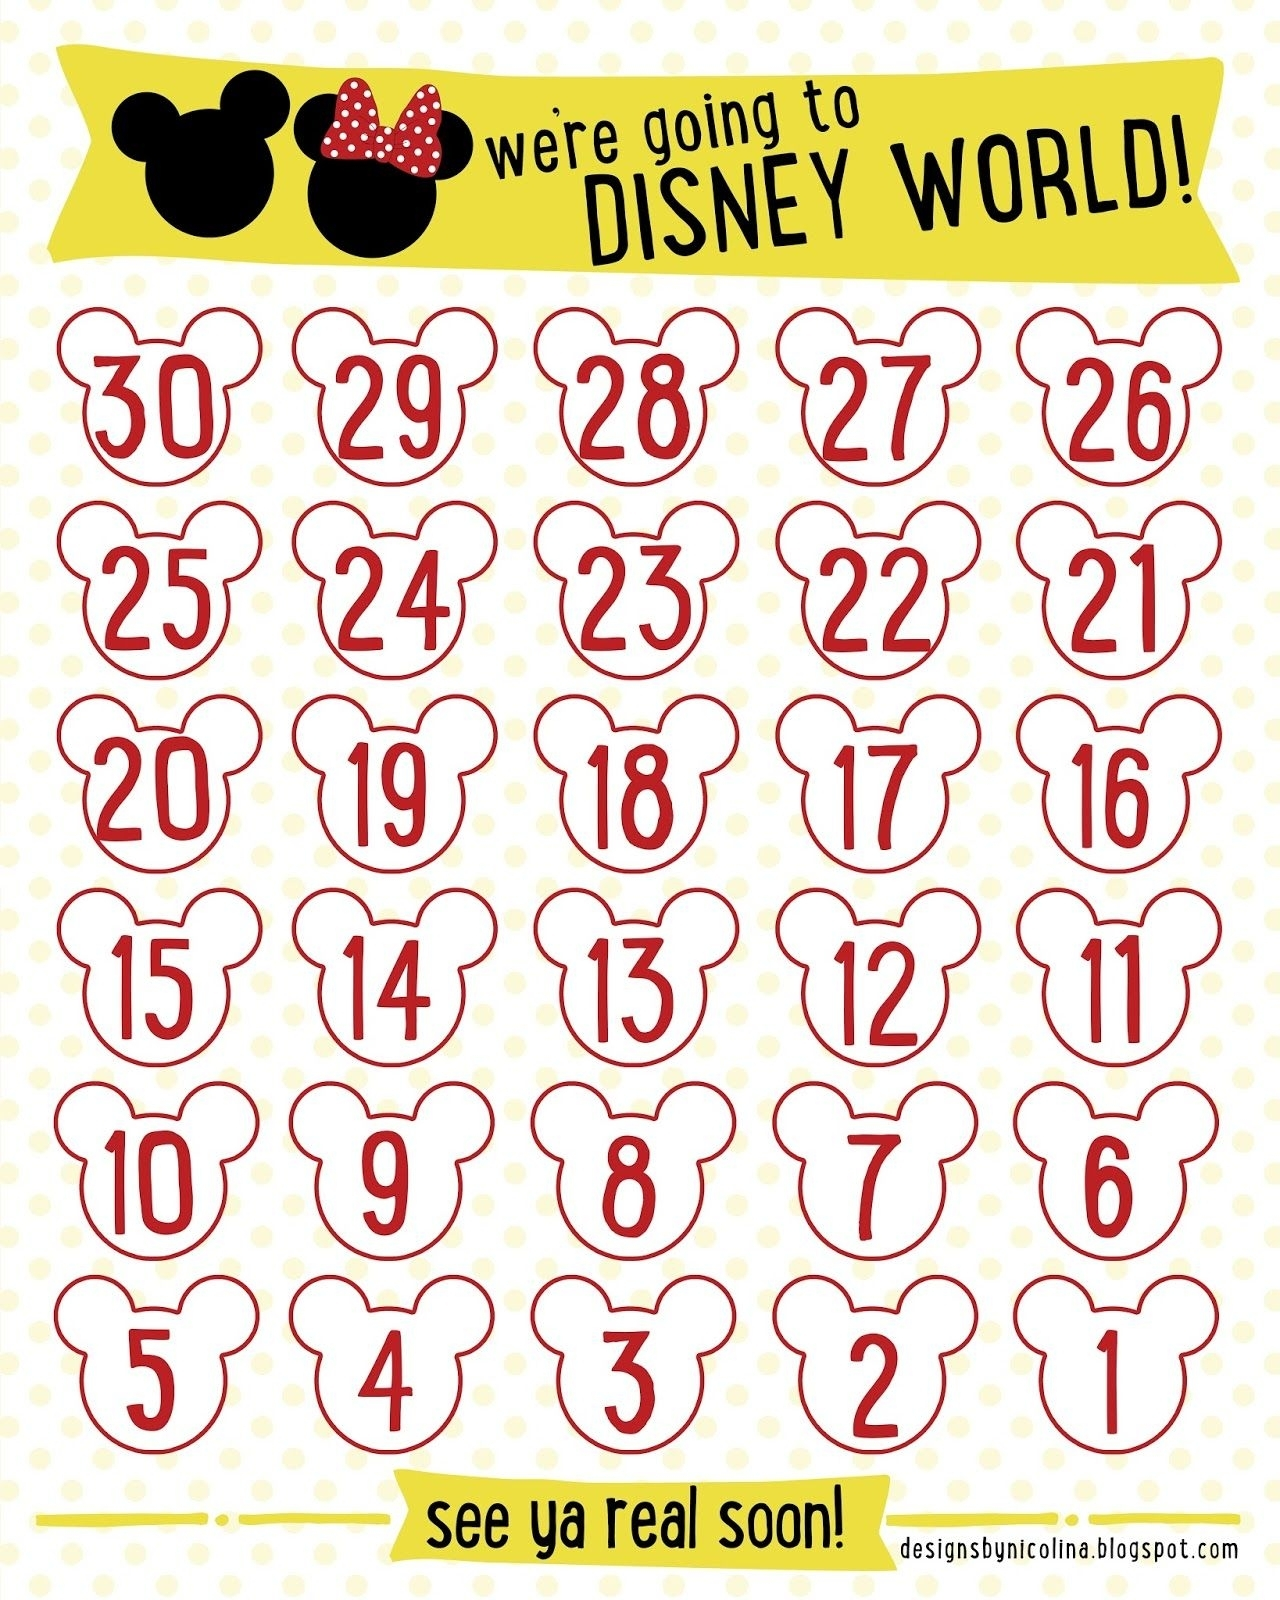 Disney Countdown! /// Free Printable /// | Disney Countdown intended for Disney Cruise Countdown Calendar Out Of Paper